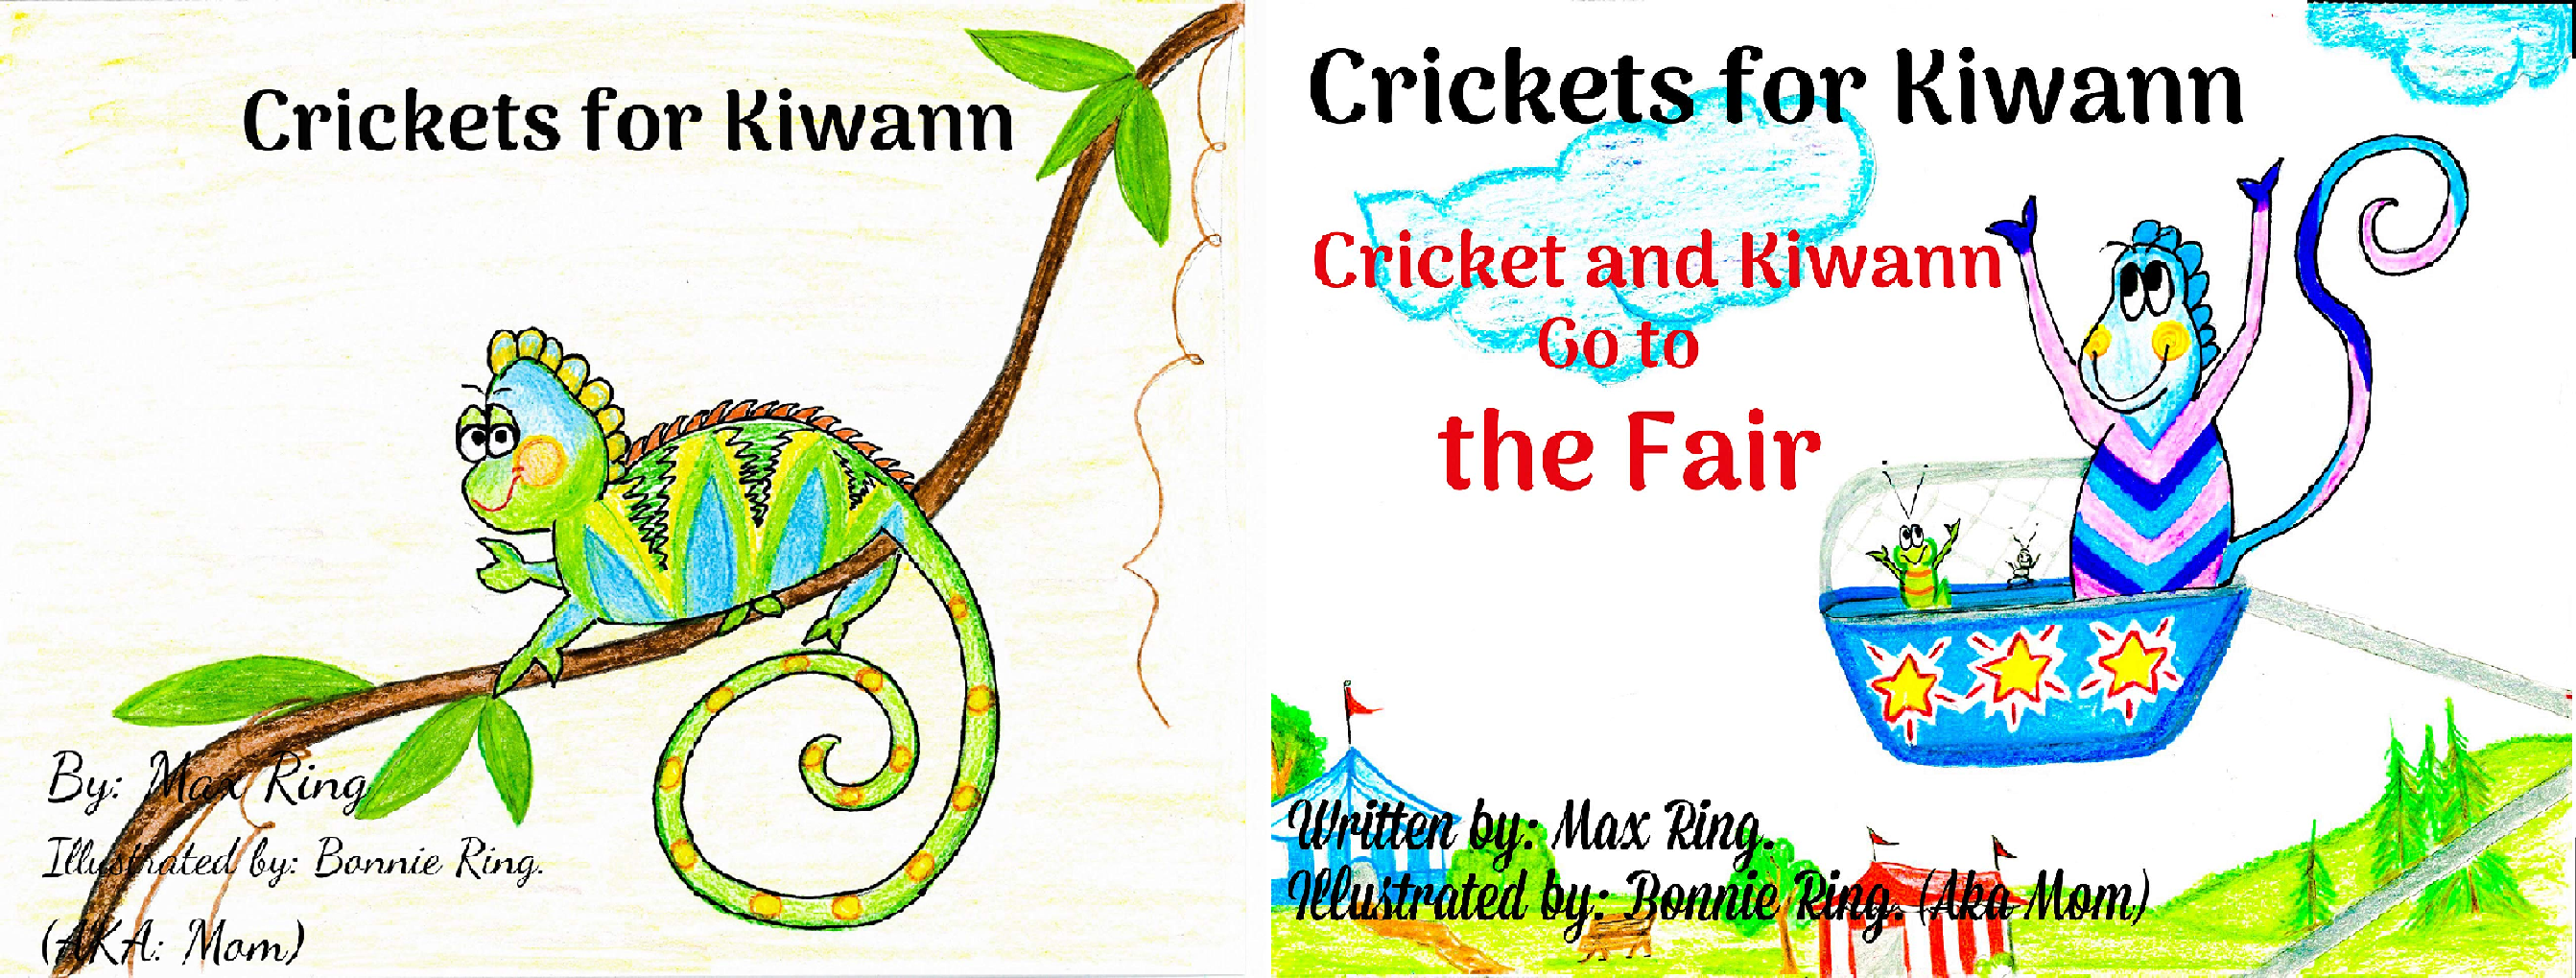 Cricket-bundle (Crickets for Kiwann (2 Book Series))